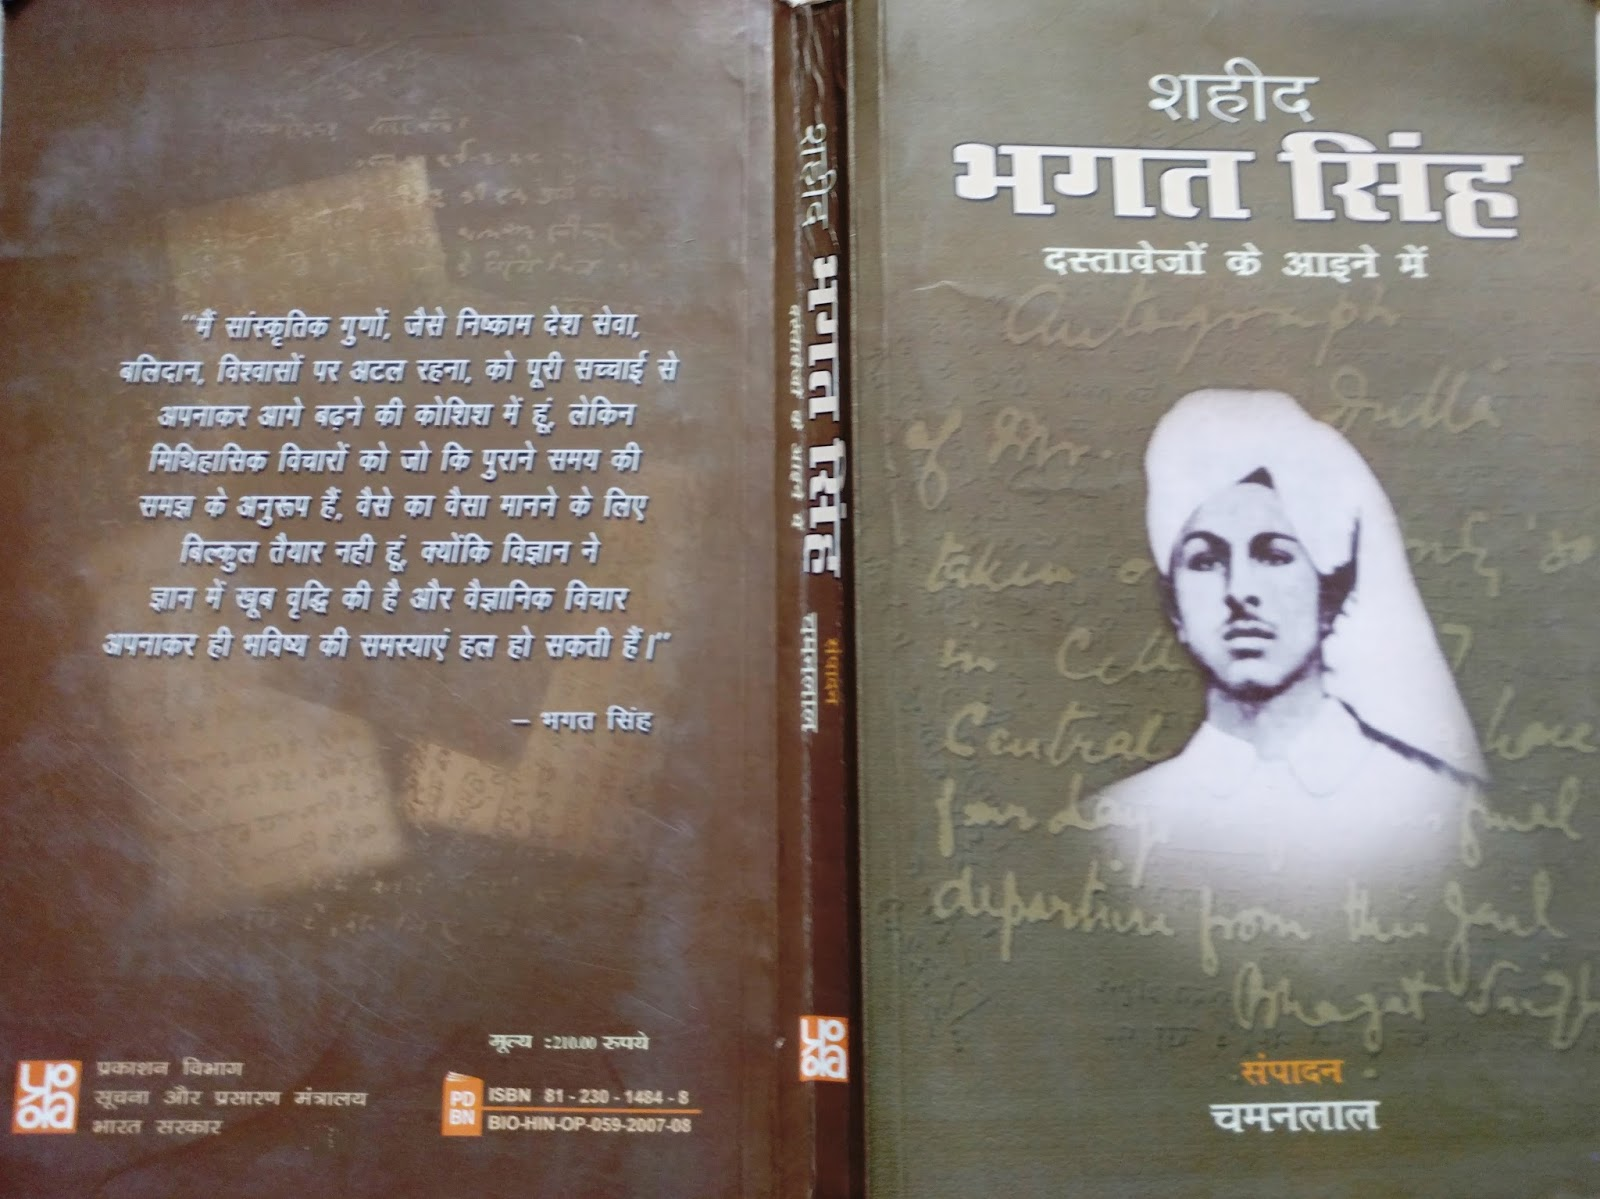 bhagat singh in hindi language essay Bhagat singh: a media role model bhagat singh's first essay on the punjabi language and script written in 1924 at the age of 16 reveals his deep hindi.